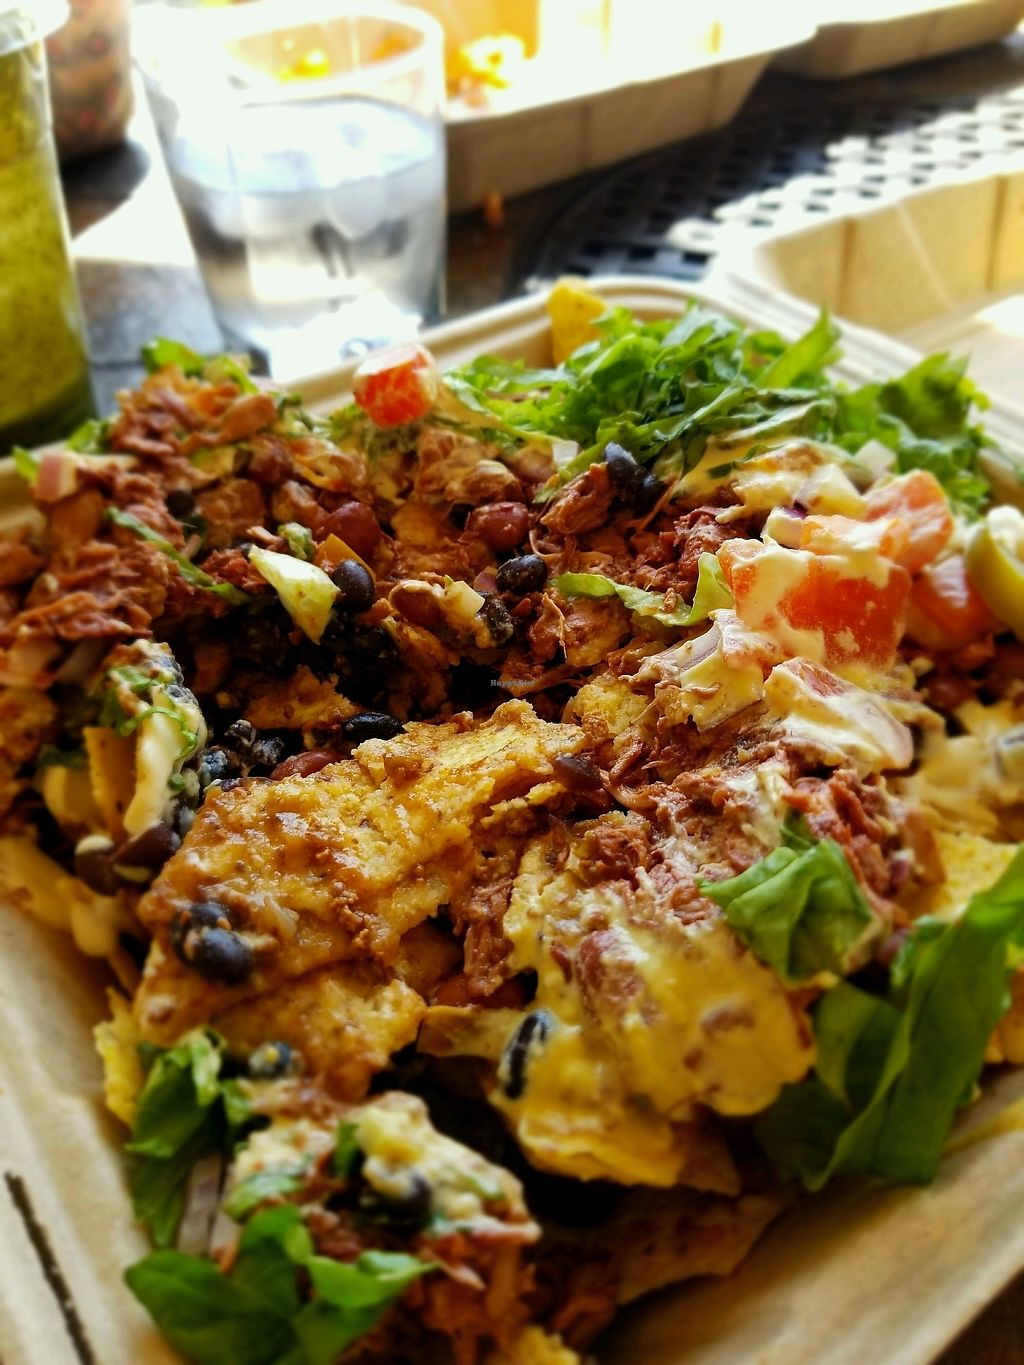 "Photo of Herbivores Healthy Fast Food   by <a href=""/members/profile/Vegan.Shay"">Vegan.Shay</a> <br/>jackfruit nachos <br/> January 19, 2018  - <a href='/contact/abuse/image/107171/348244'>Report</a>"